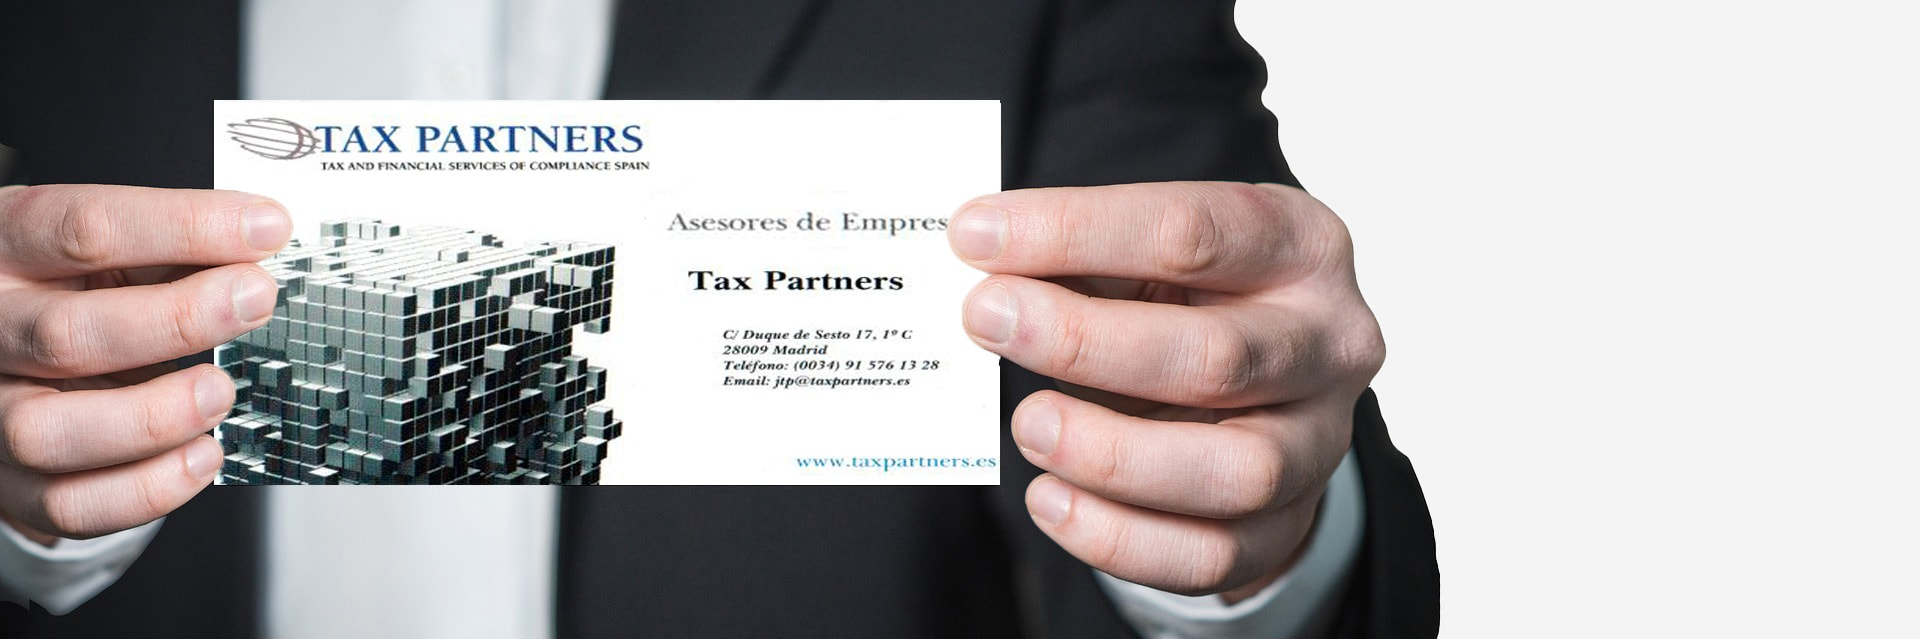 contact tax partners